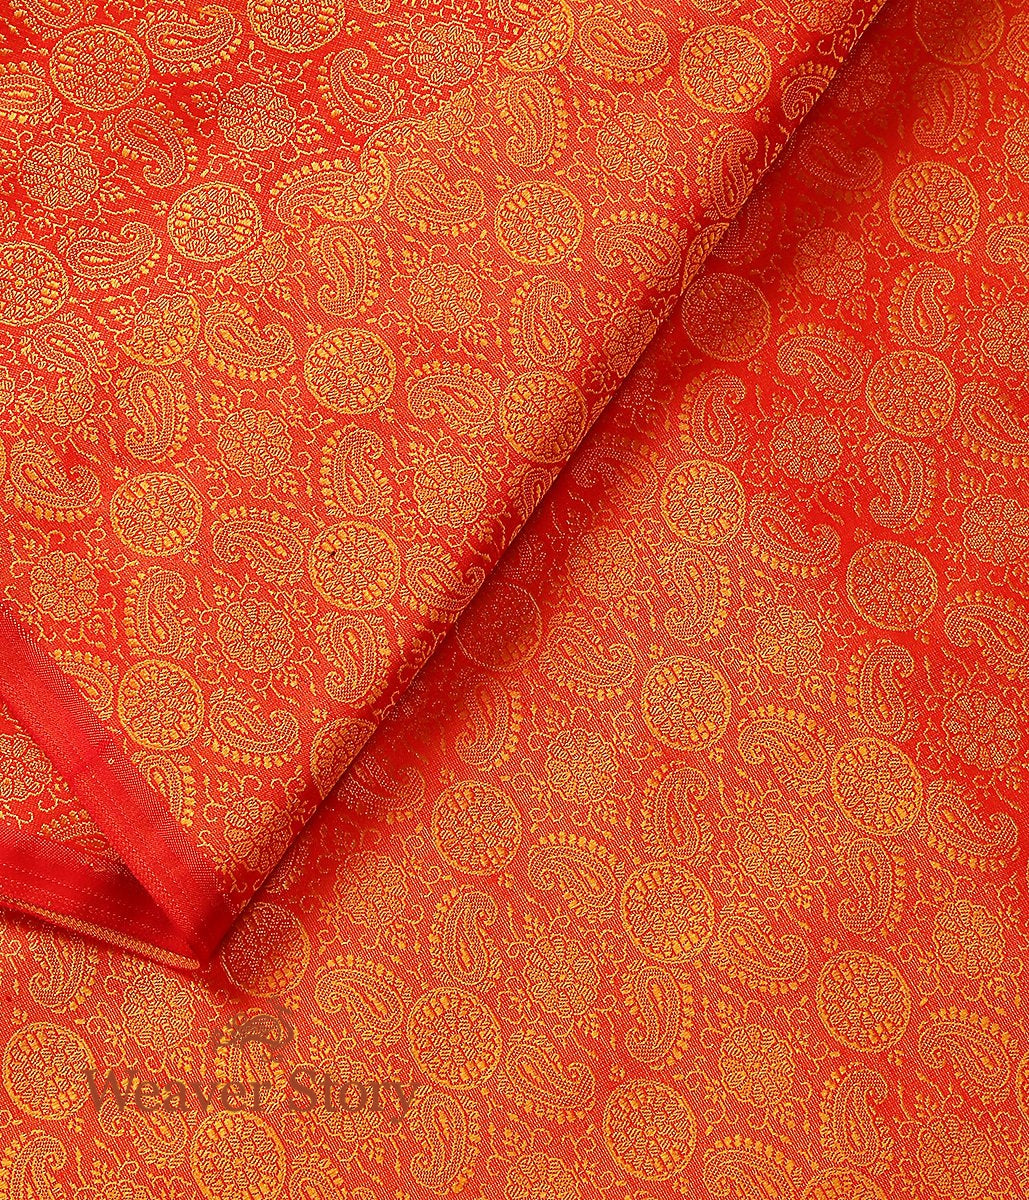 Handwoven Orange and Mustard Self Tanchoi Fabric